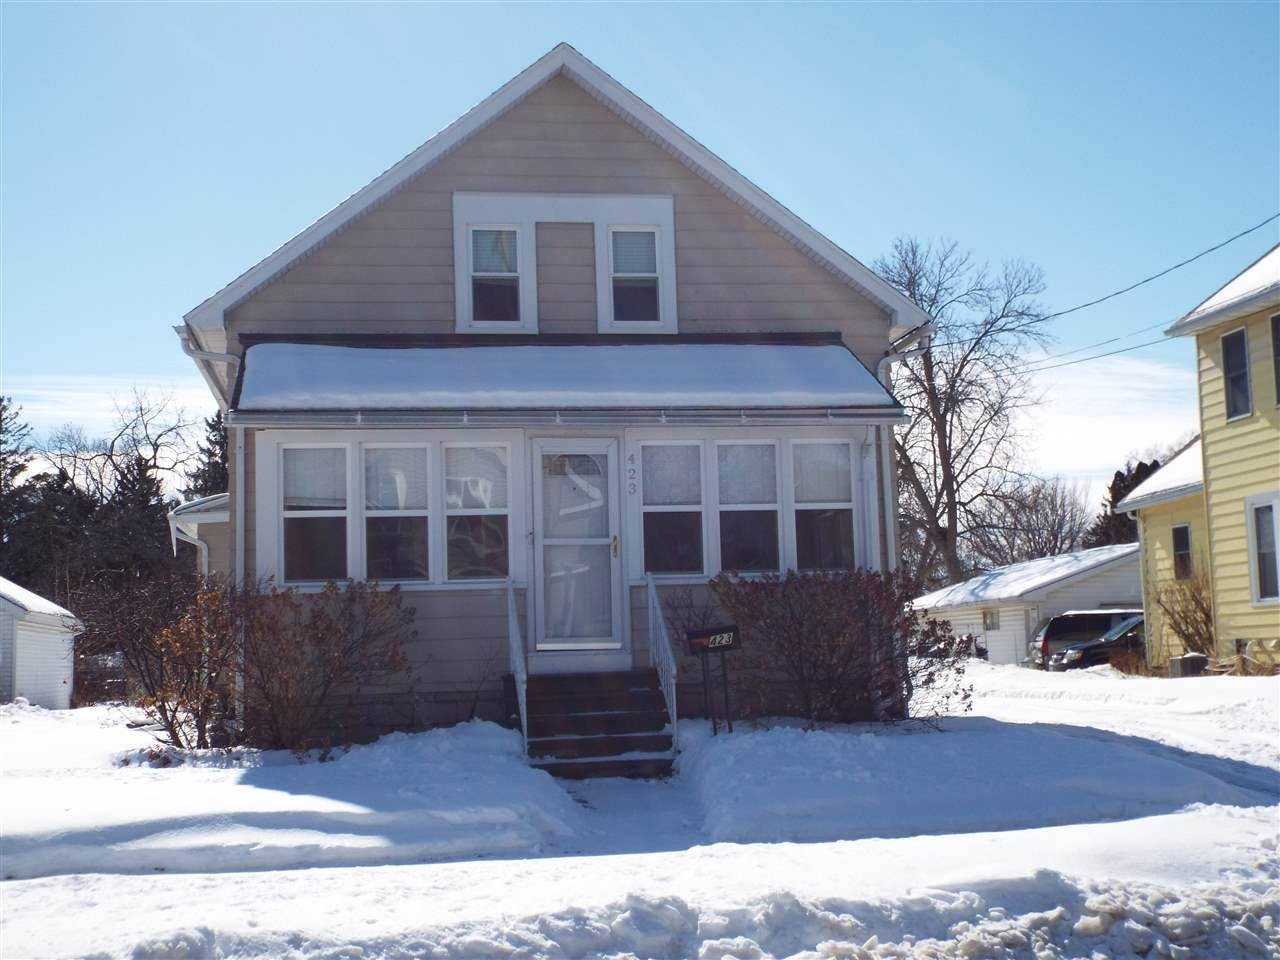 423 W 17TH Avenue, Oshkosh, WI 54902 - MLS#: 50235977